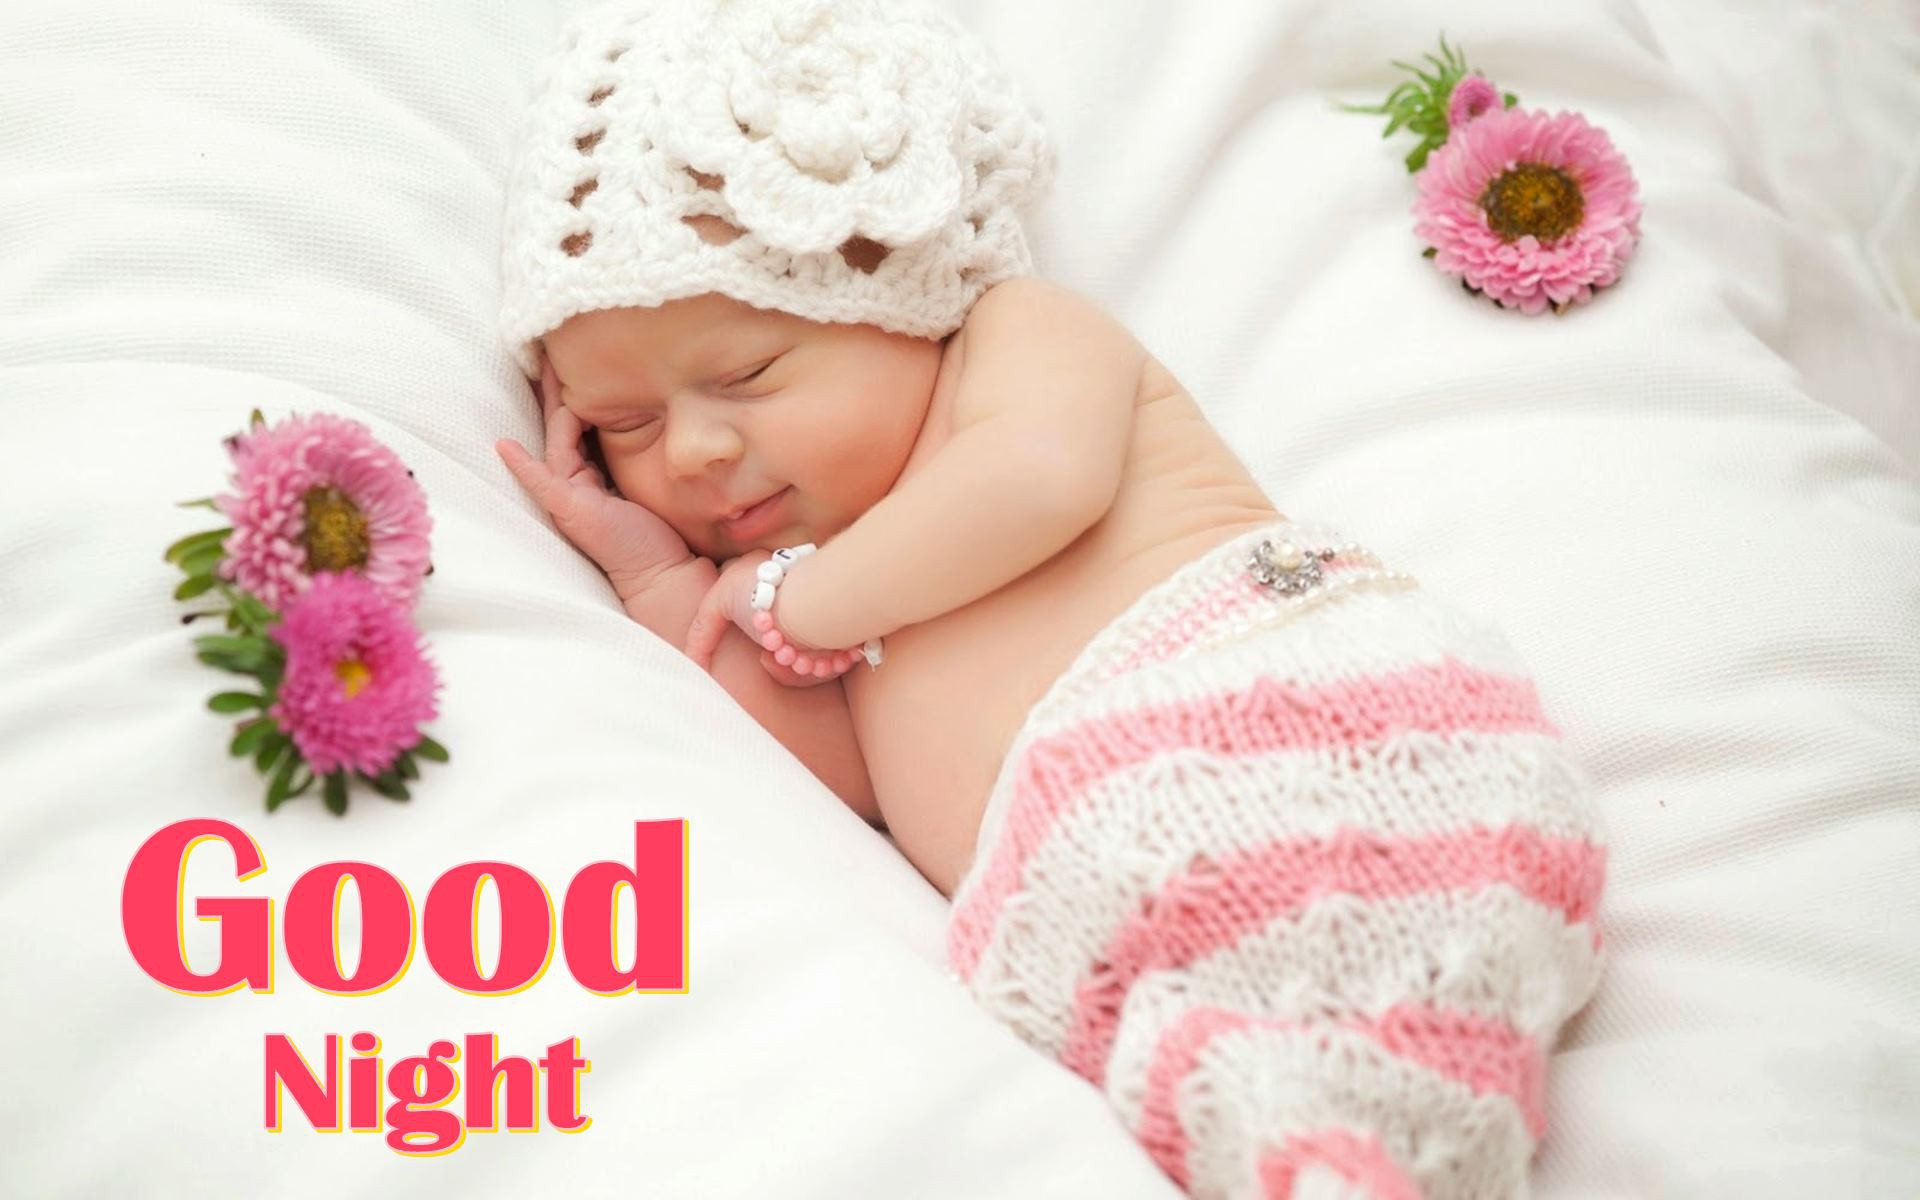 Good Night Wallpaper With Cute Baby